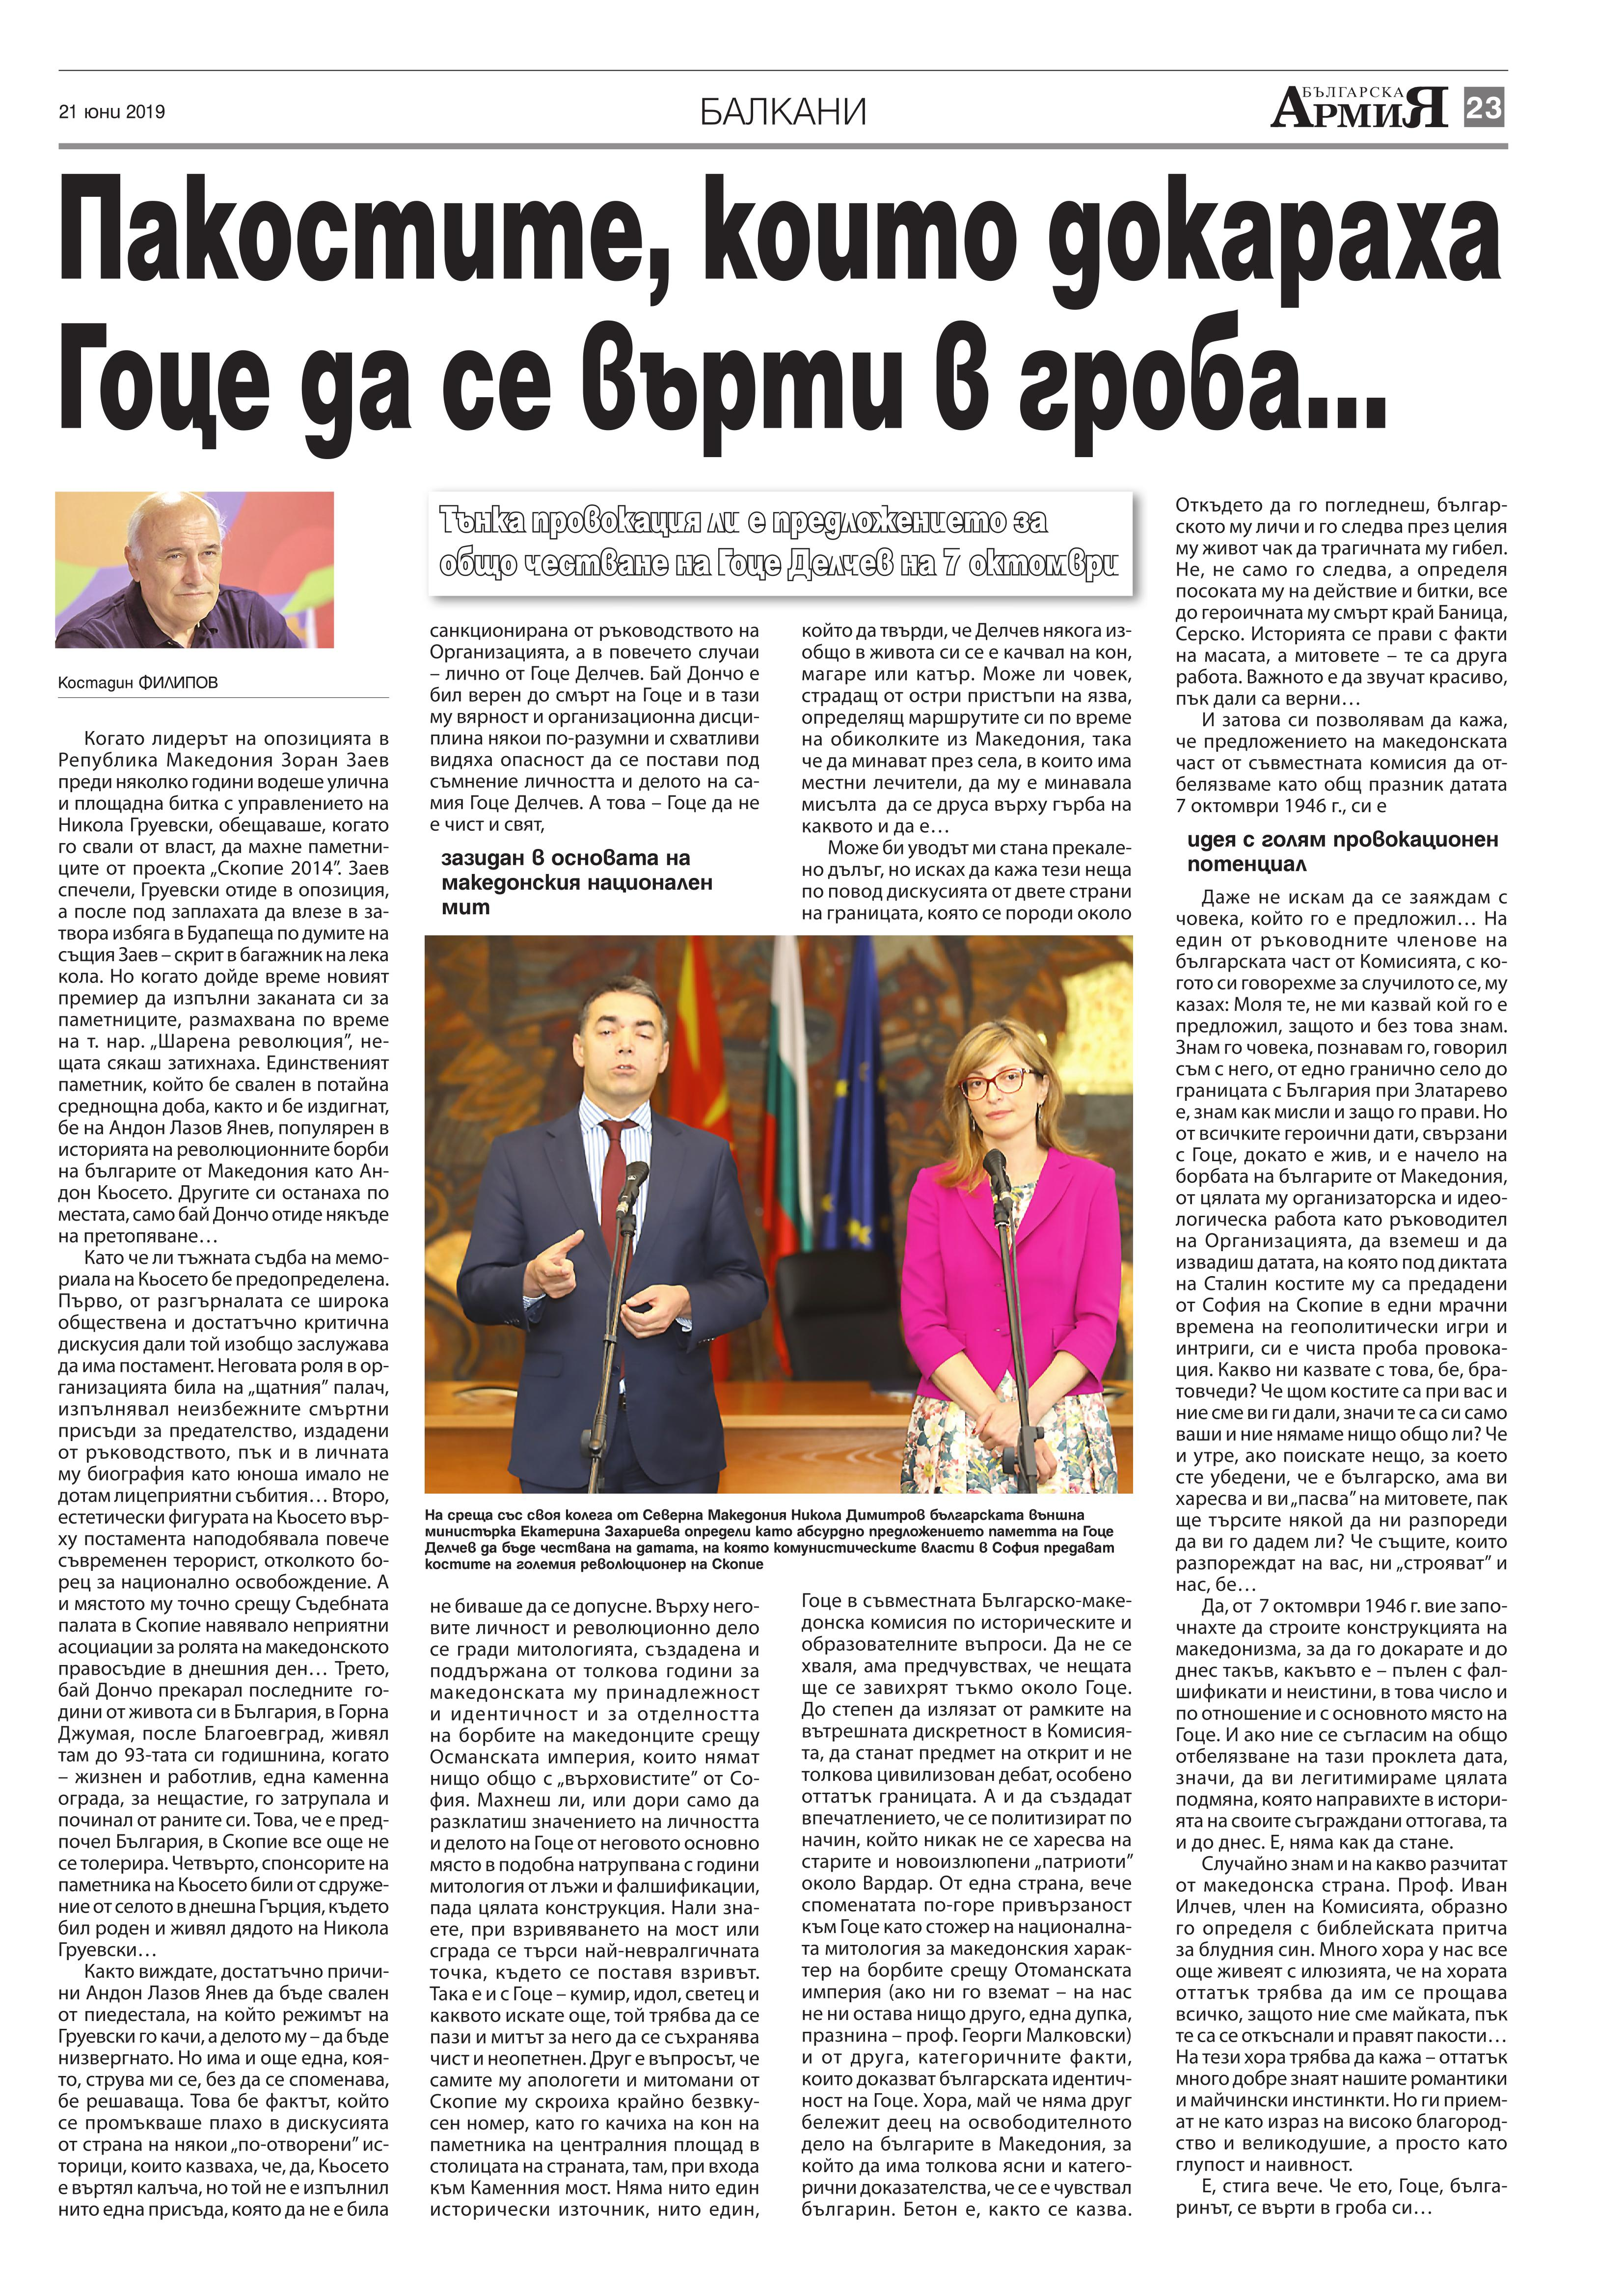 https://www.armymedia.bg/wp-content/uploads/2015/06/23.page1_-100.jpg